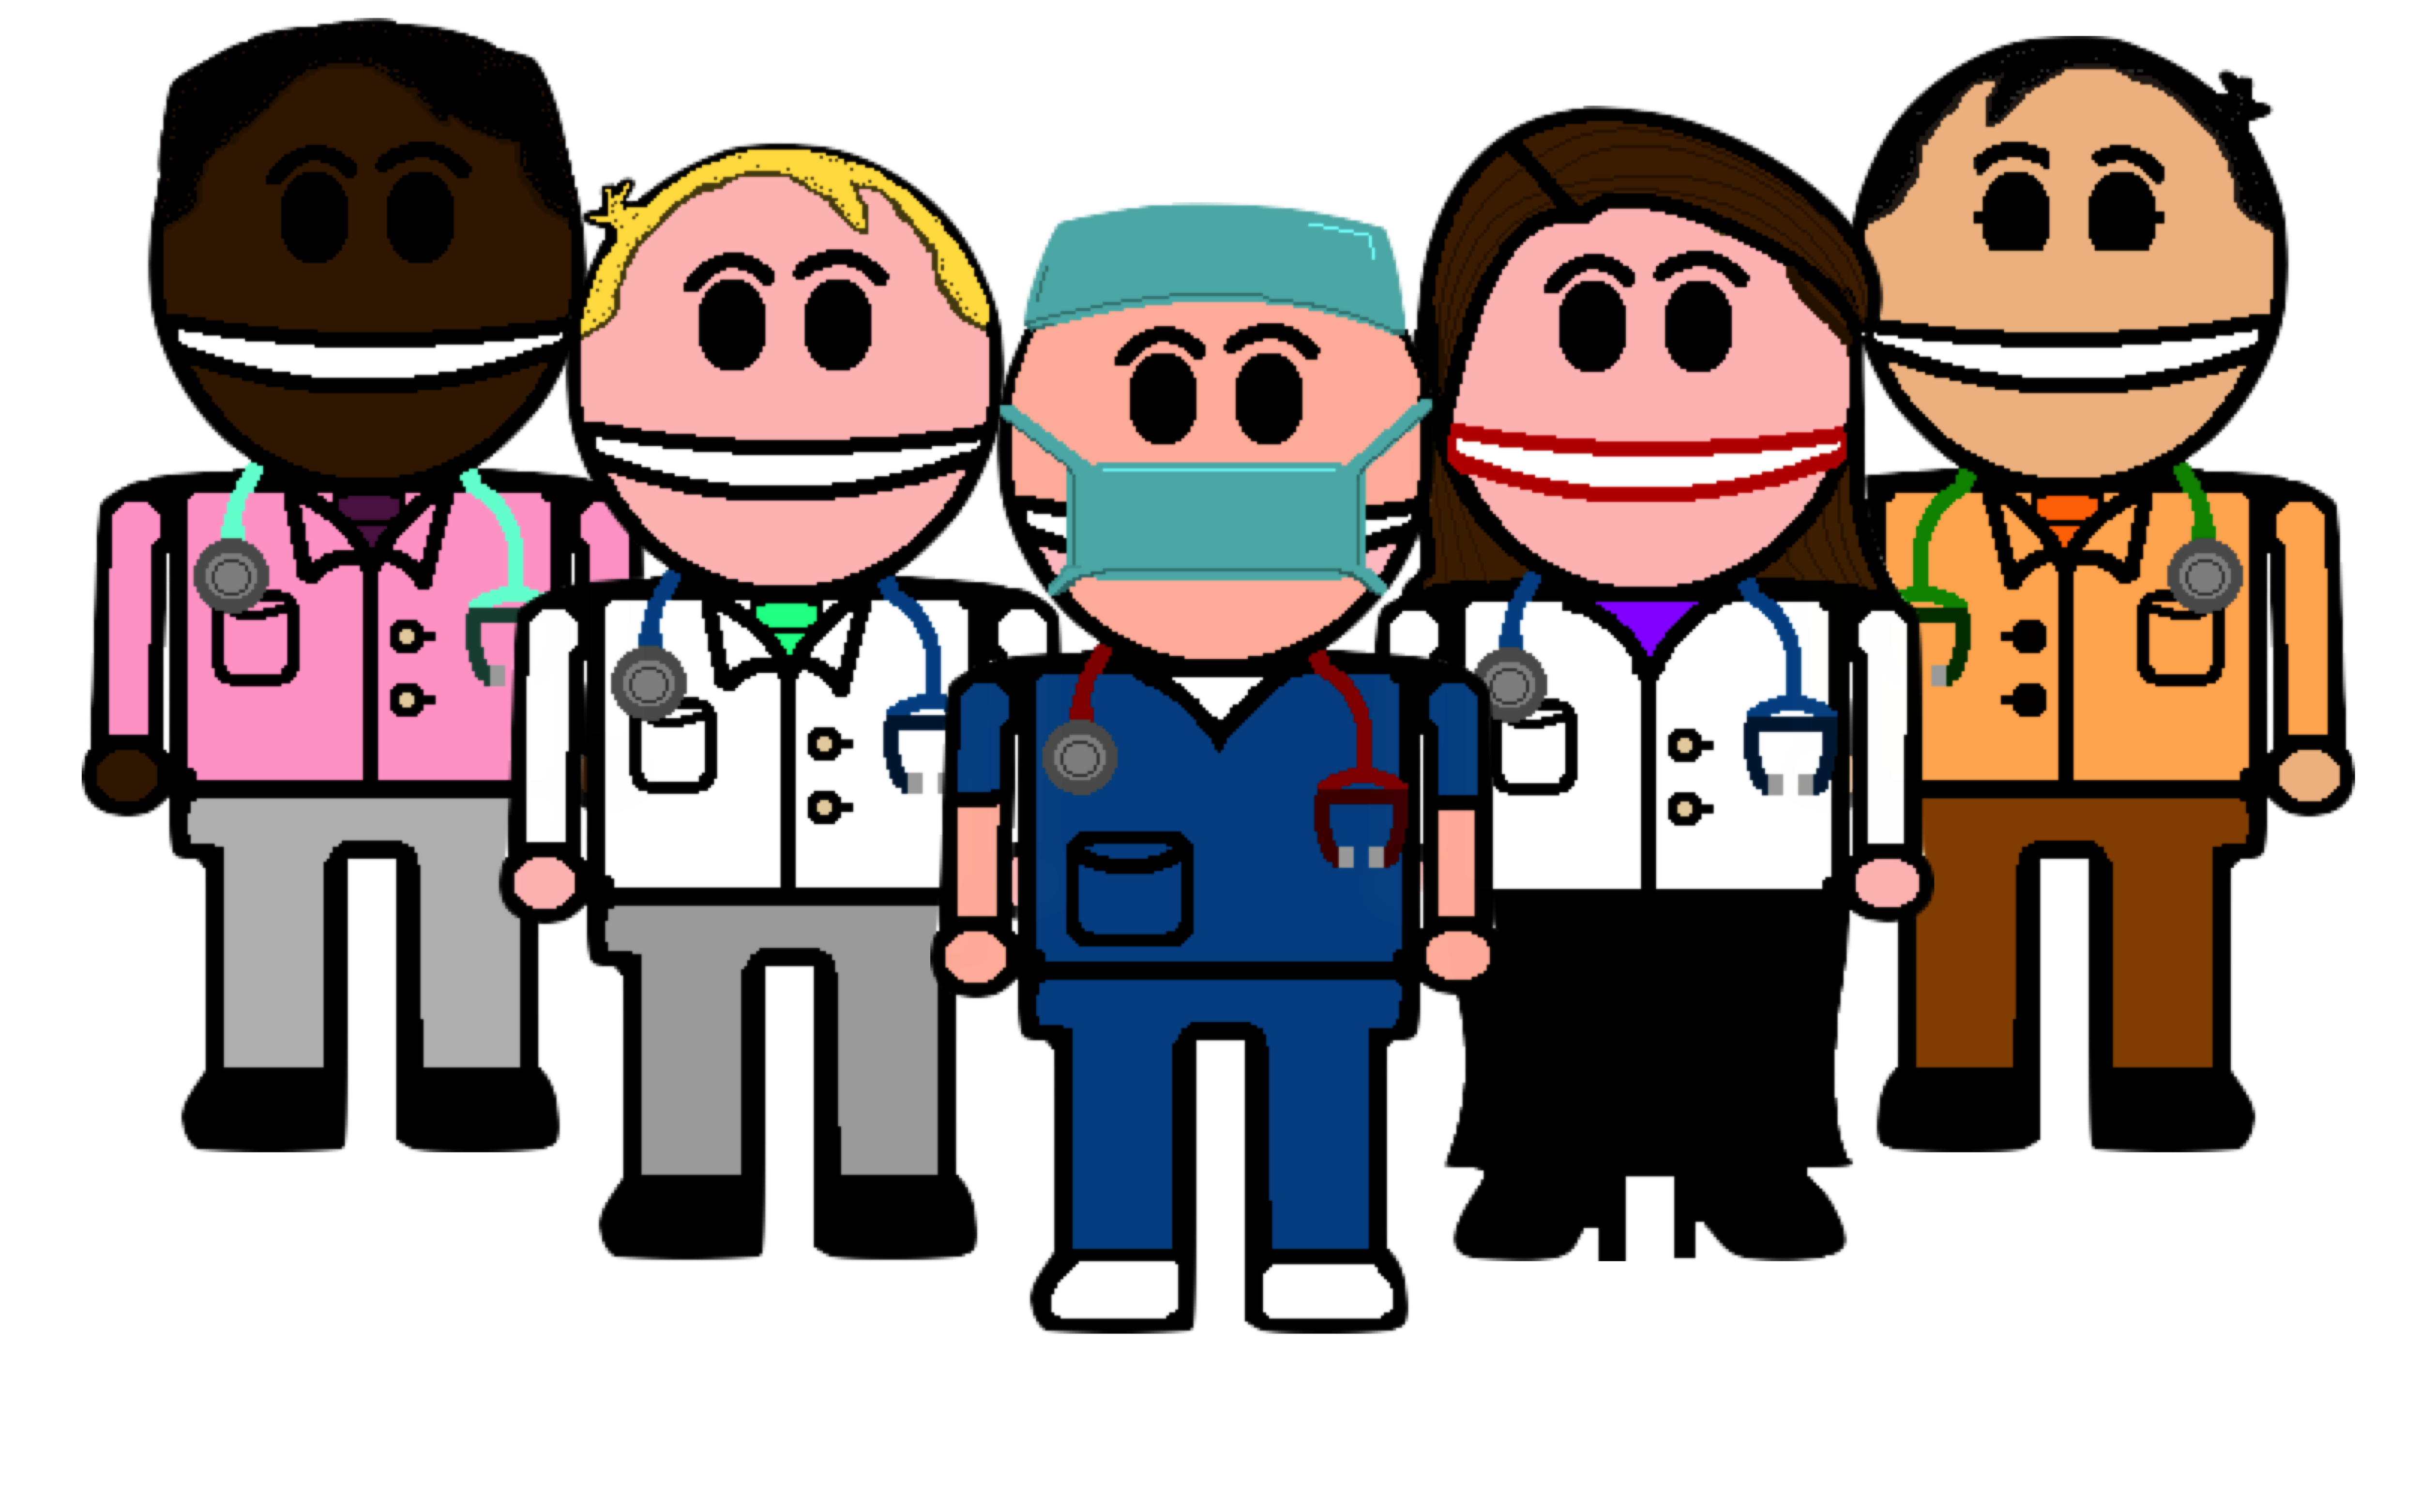 I want to know what is the best strategy to get into Medical school?